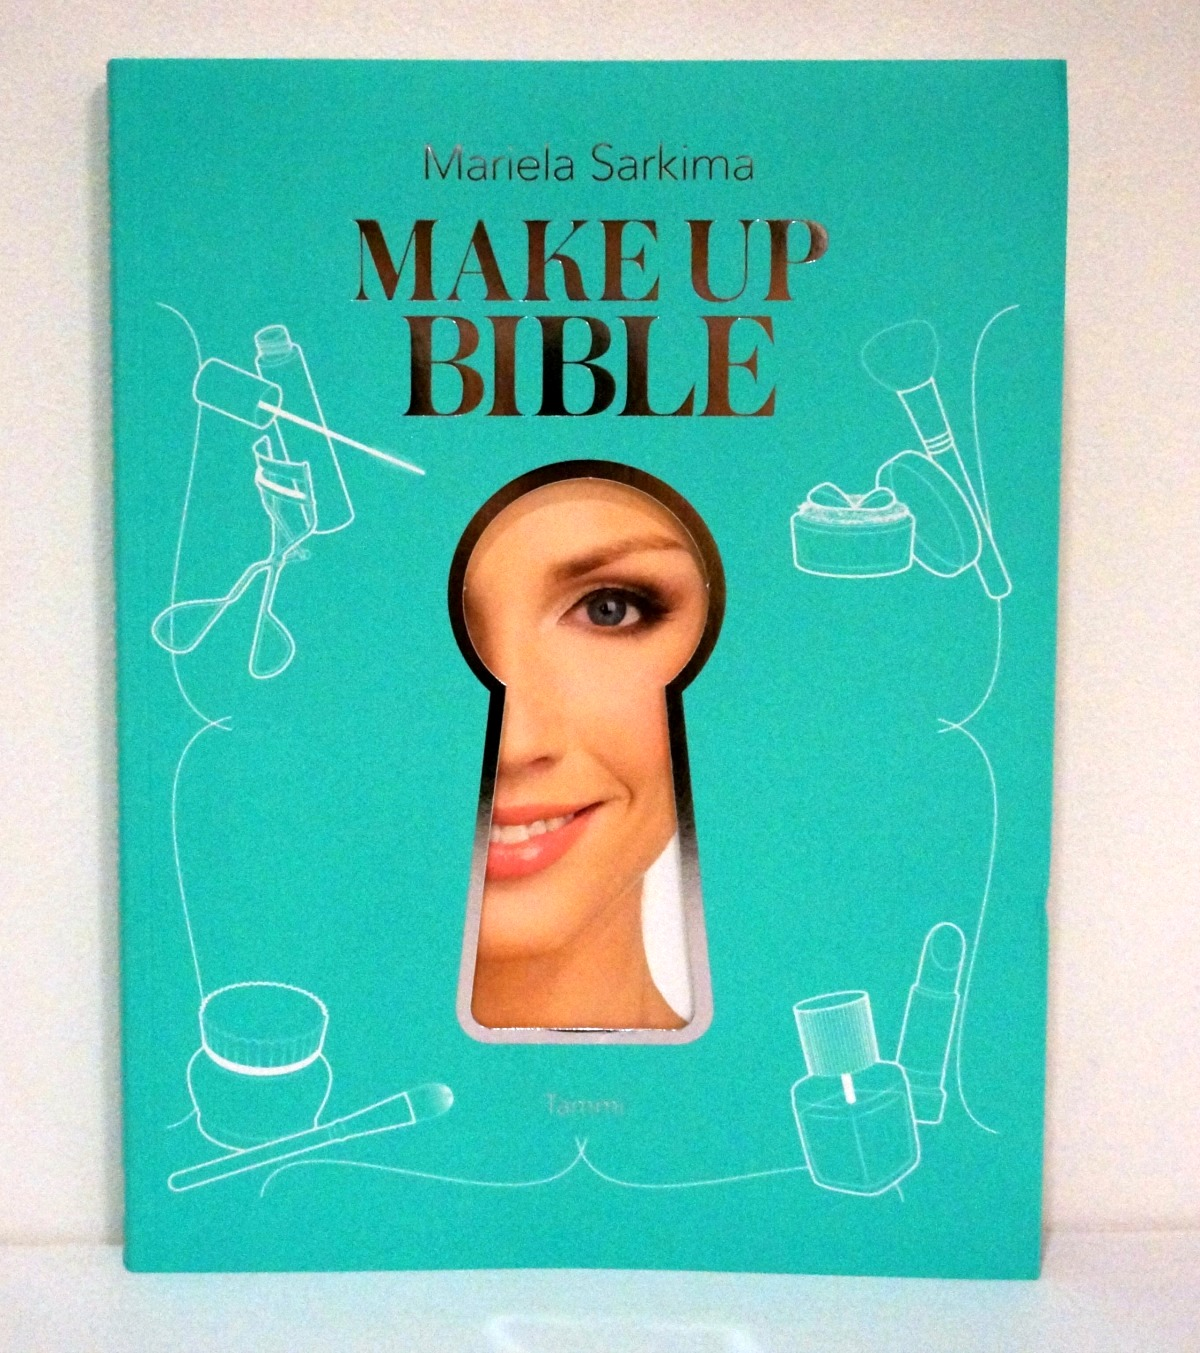 a book by mariela sarkima called makeup bible